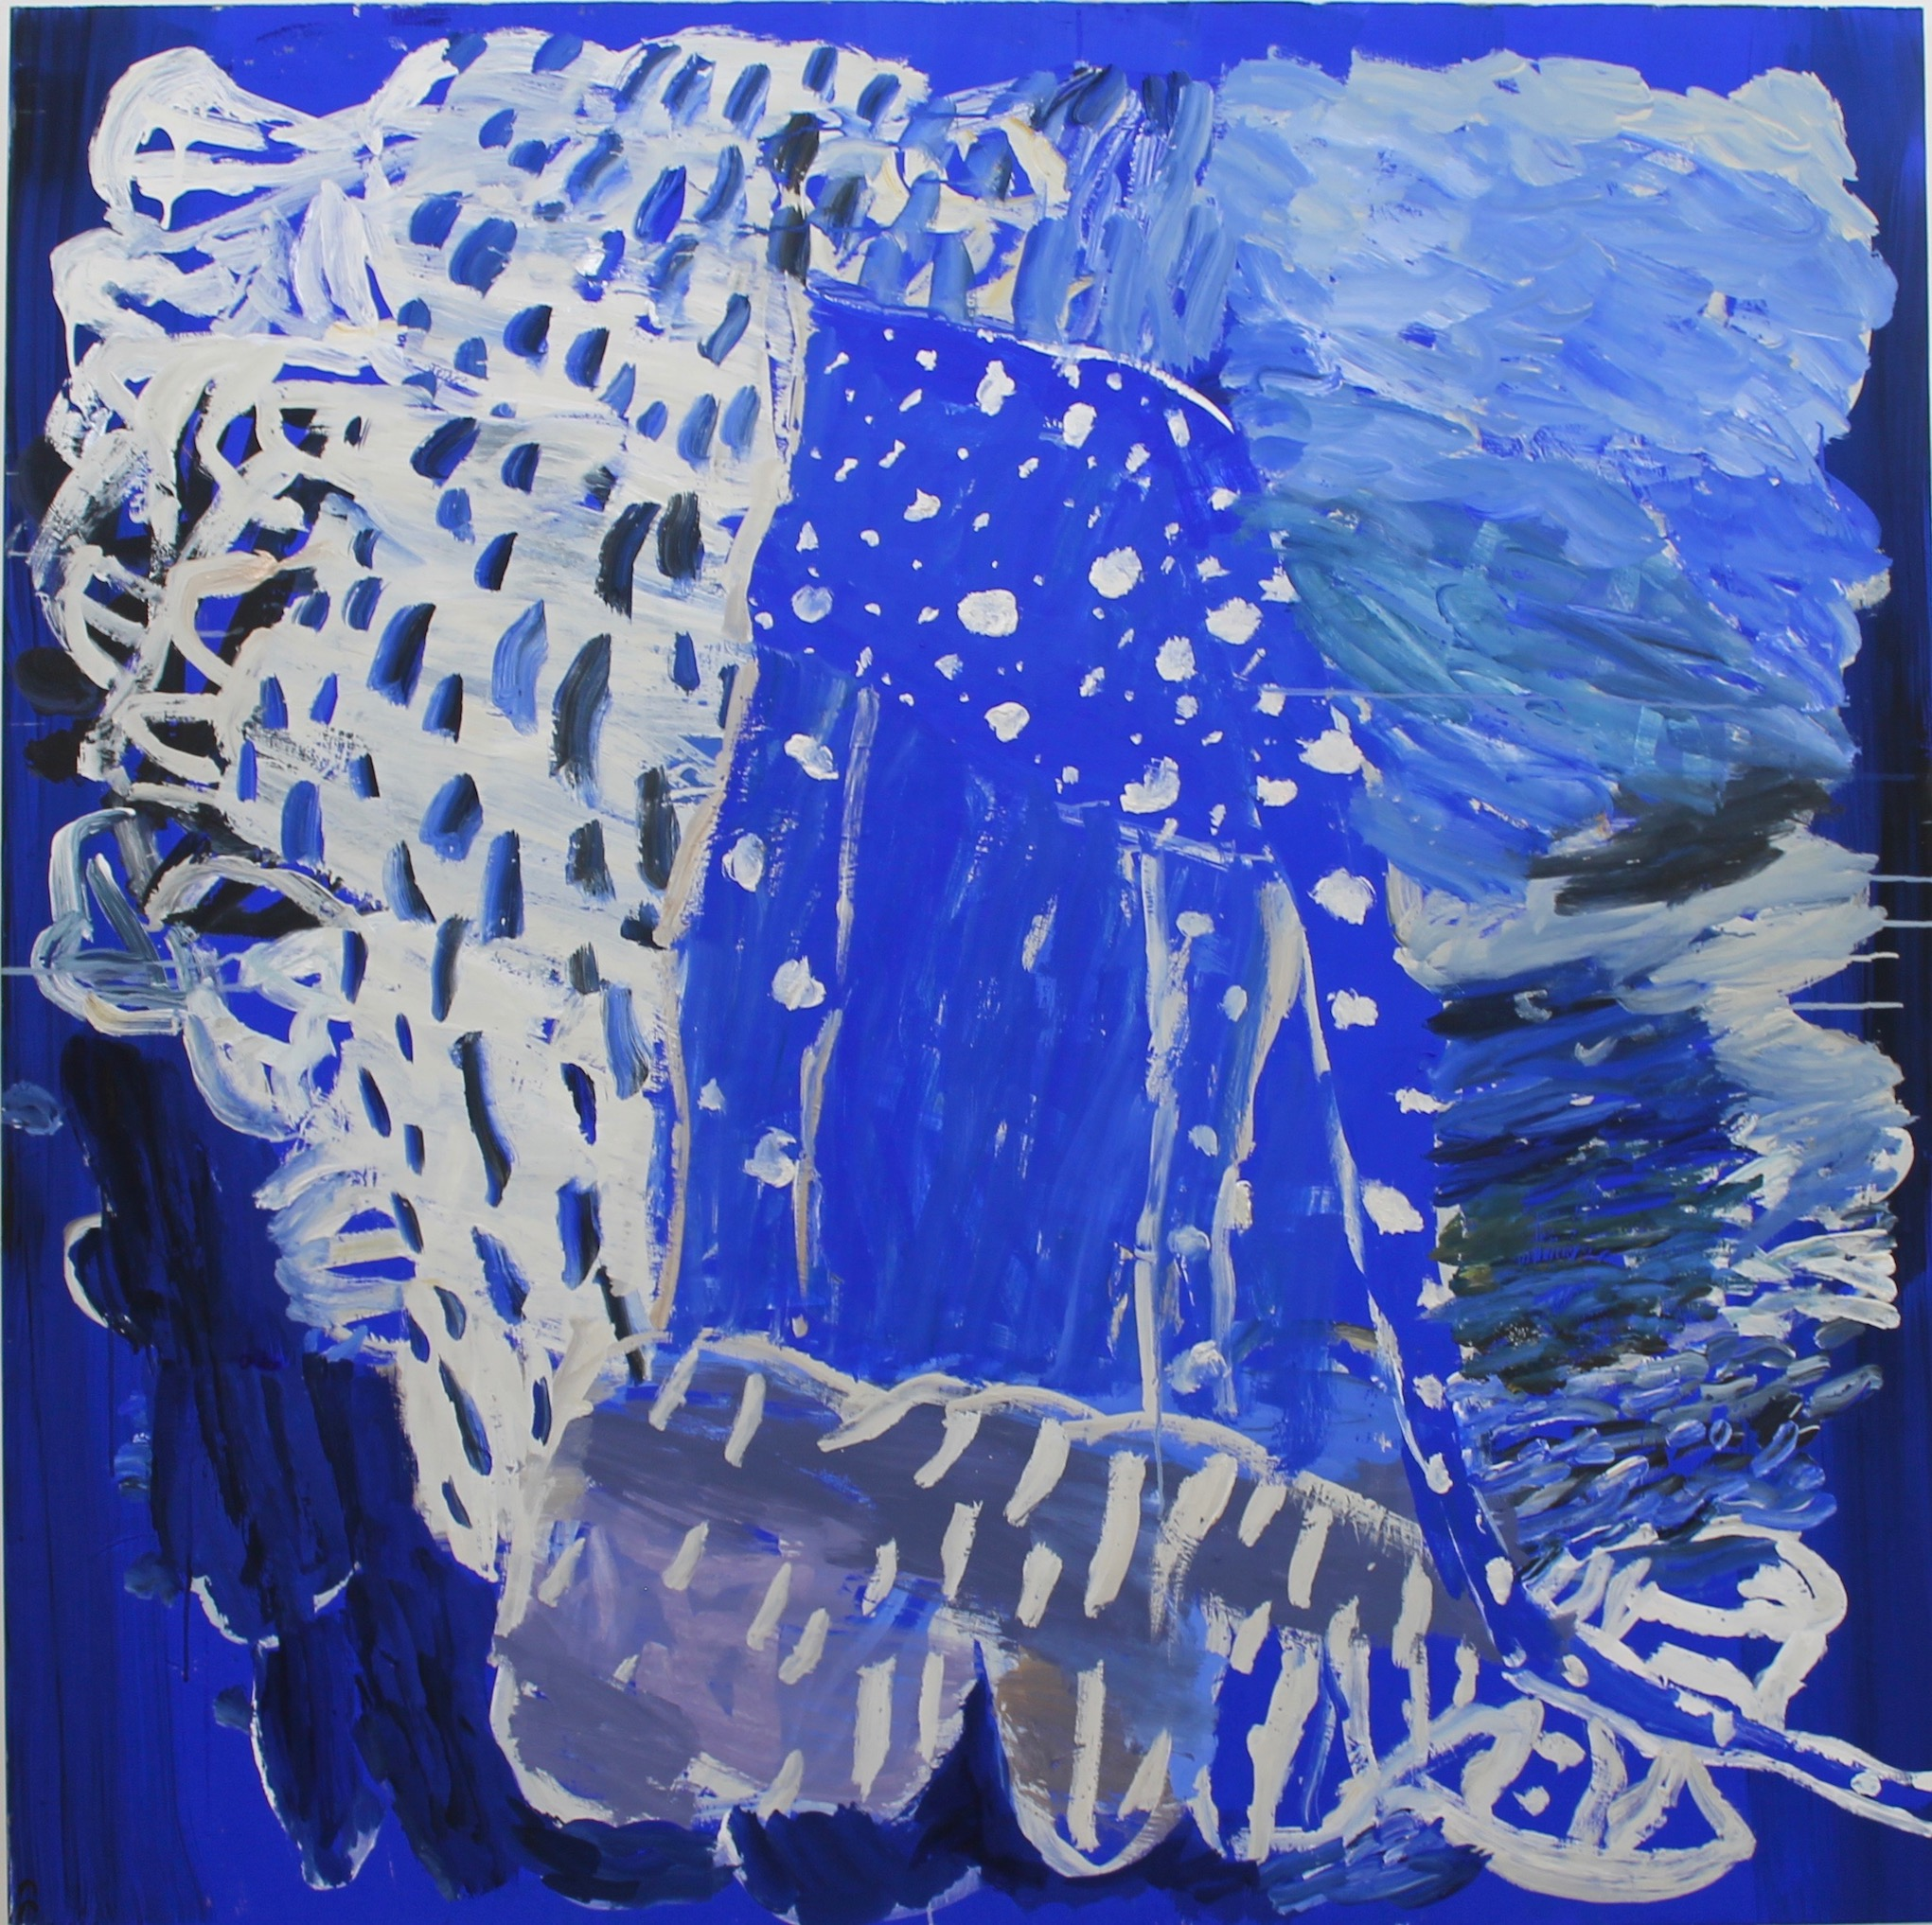 2. Some Rain at Sea 152x152cm synthetic polymers enamel canvas 2020 by Catherine Cassidy